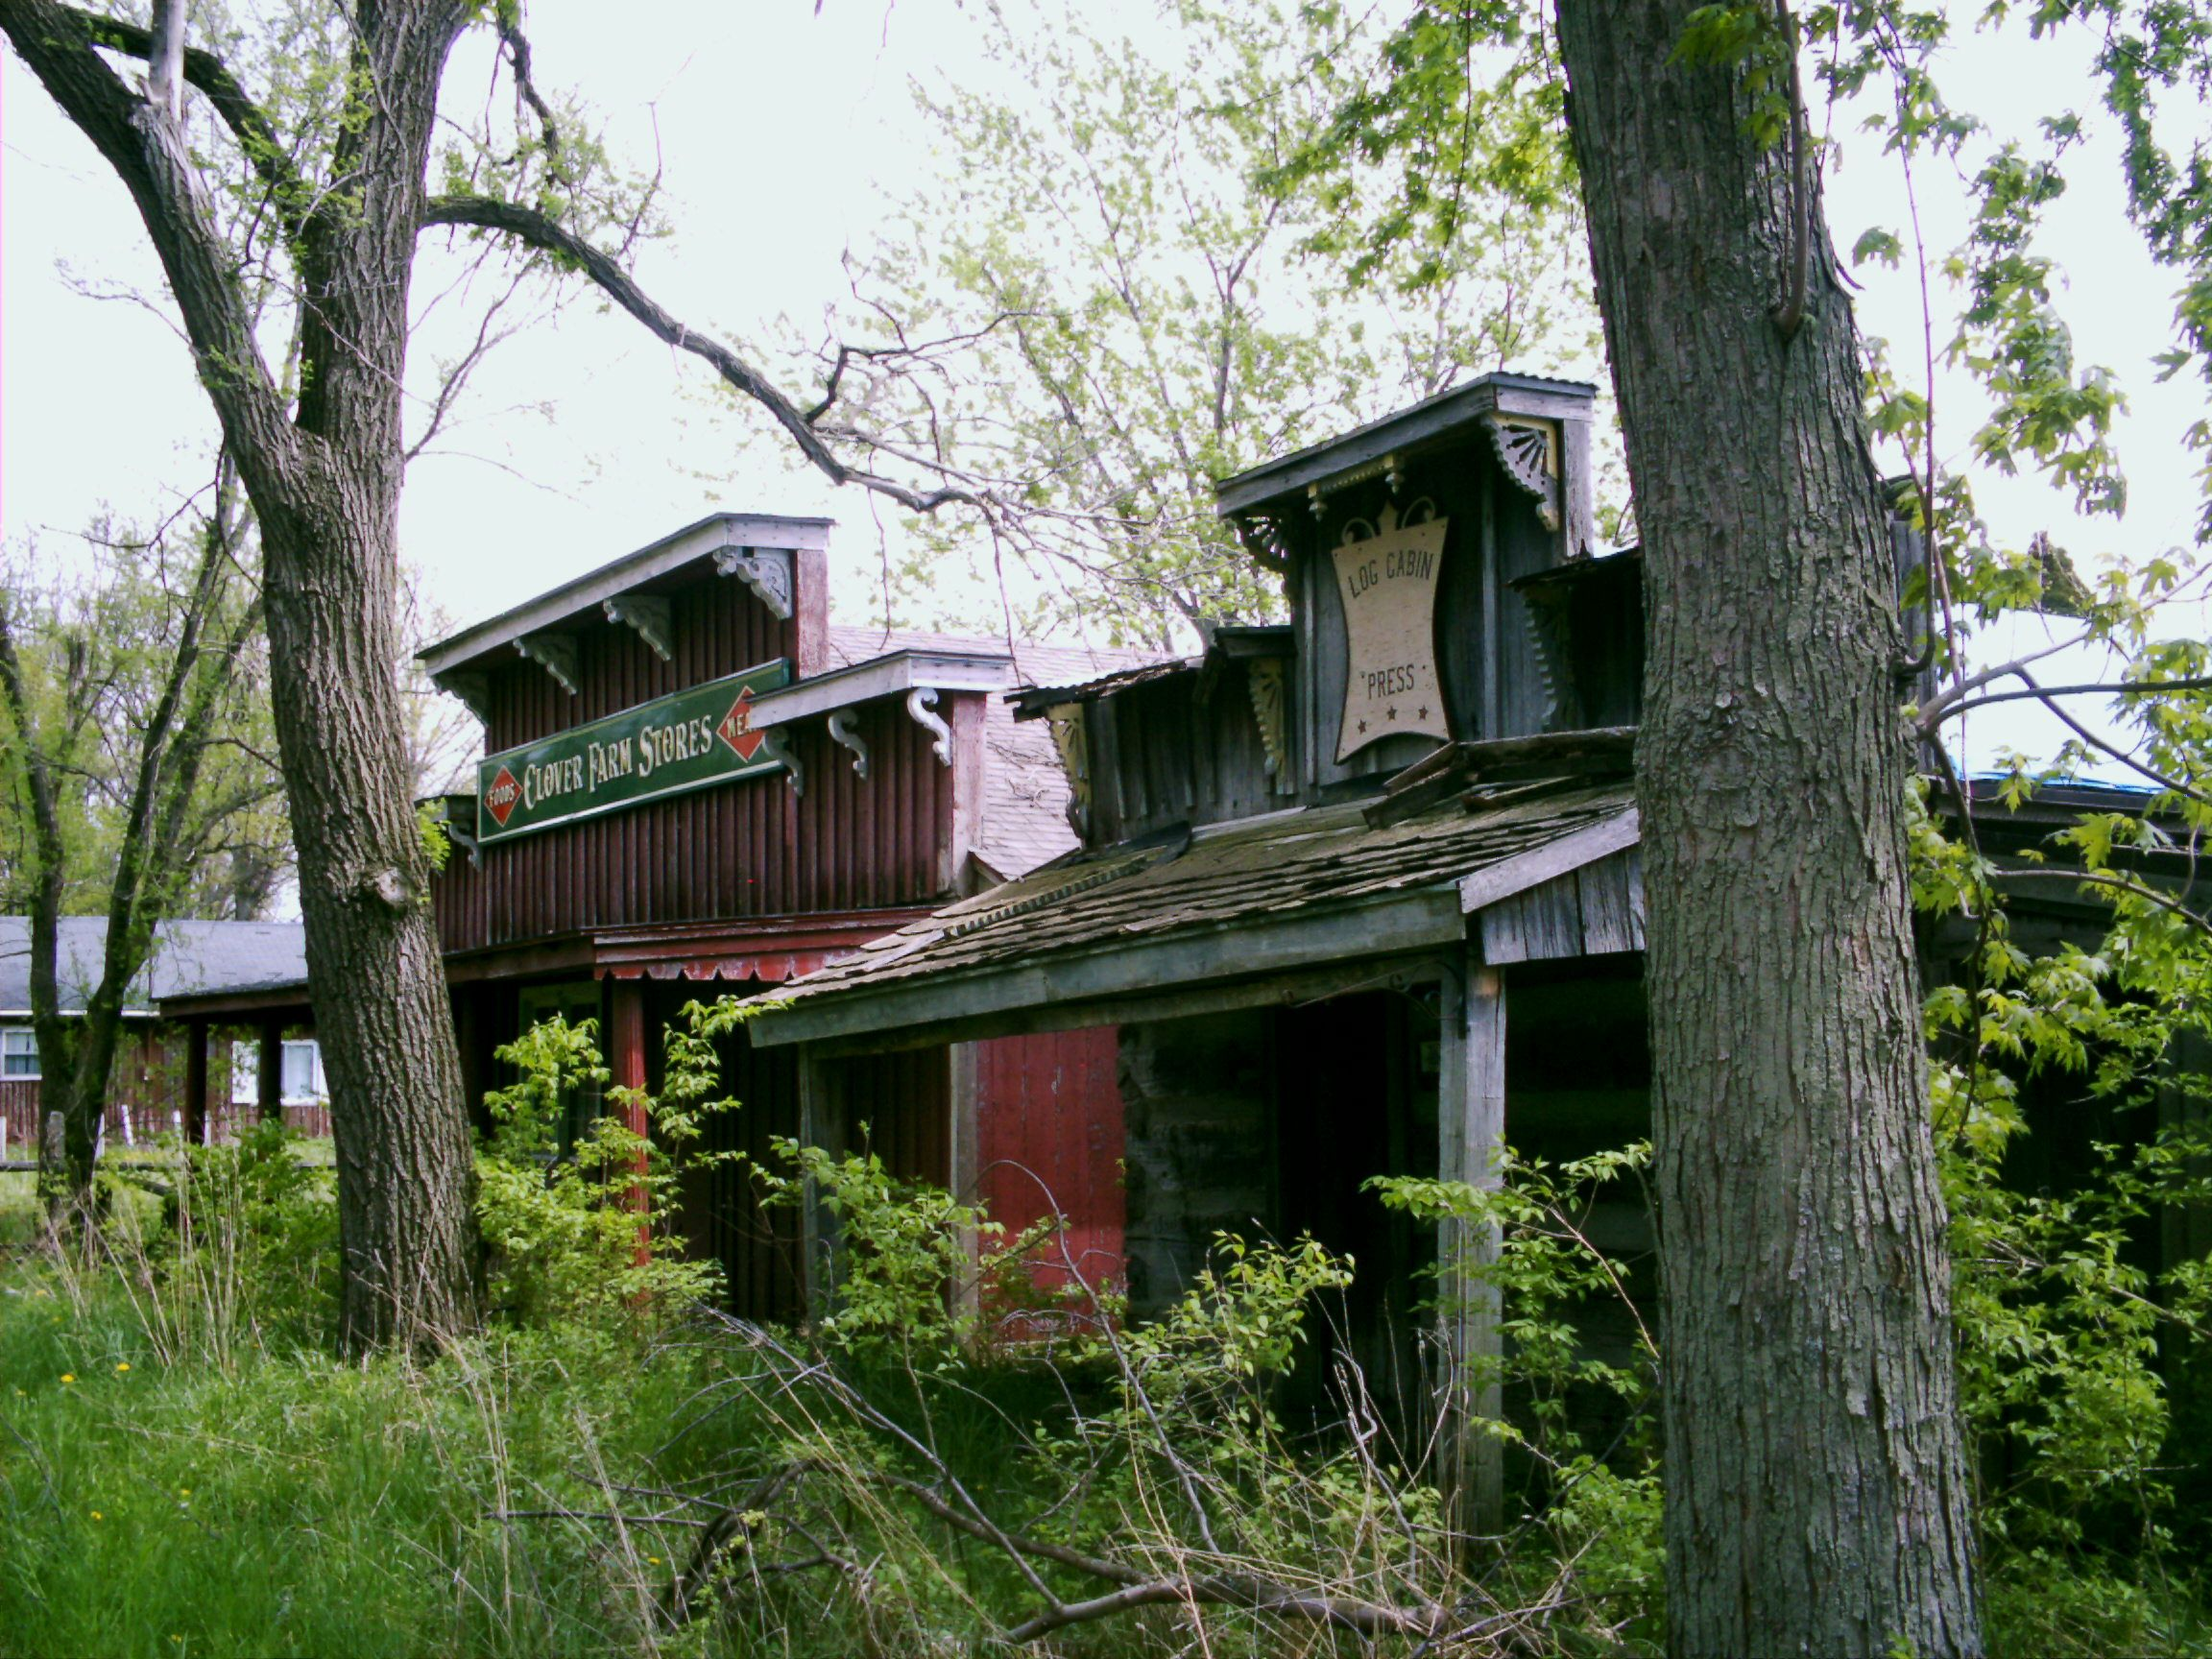 Pin by Ohio Ghost Town Exploration Co. on Ohio Ghost Towns